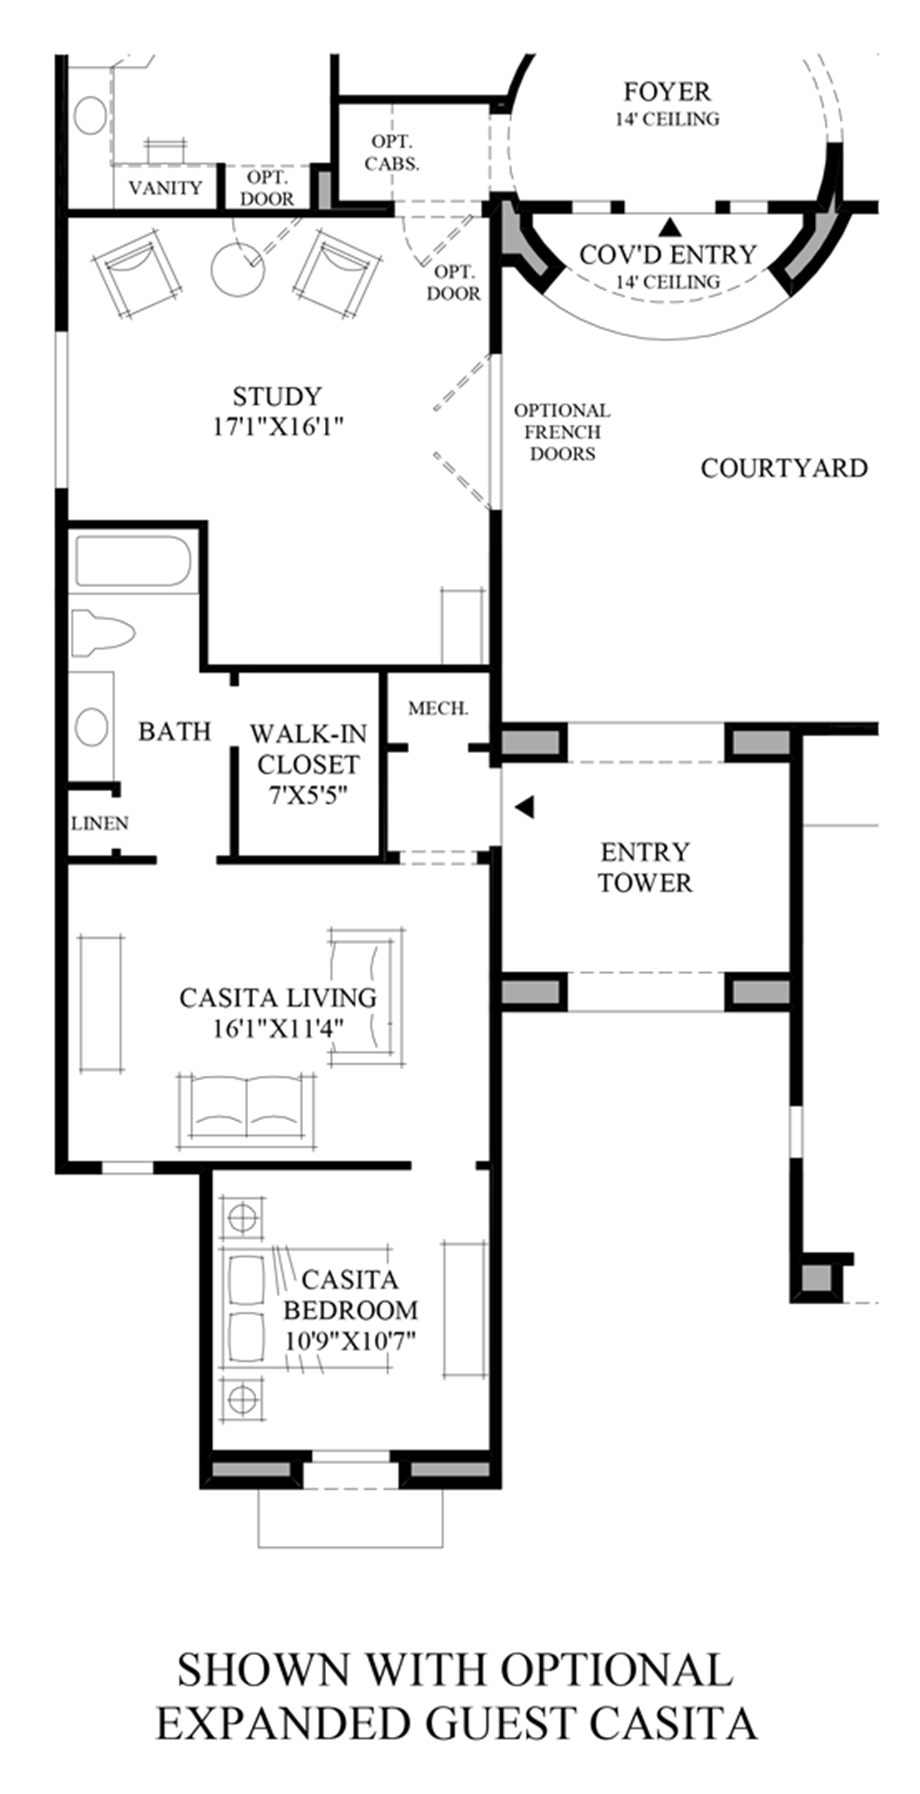 Optional Expanded Guest Casita Floor Plan